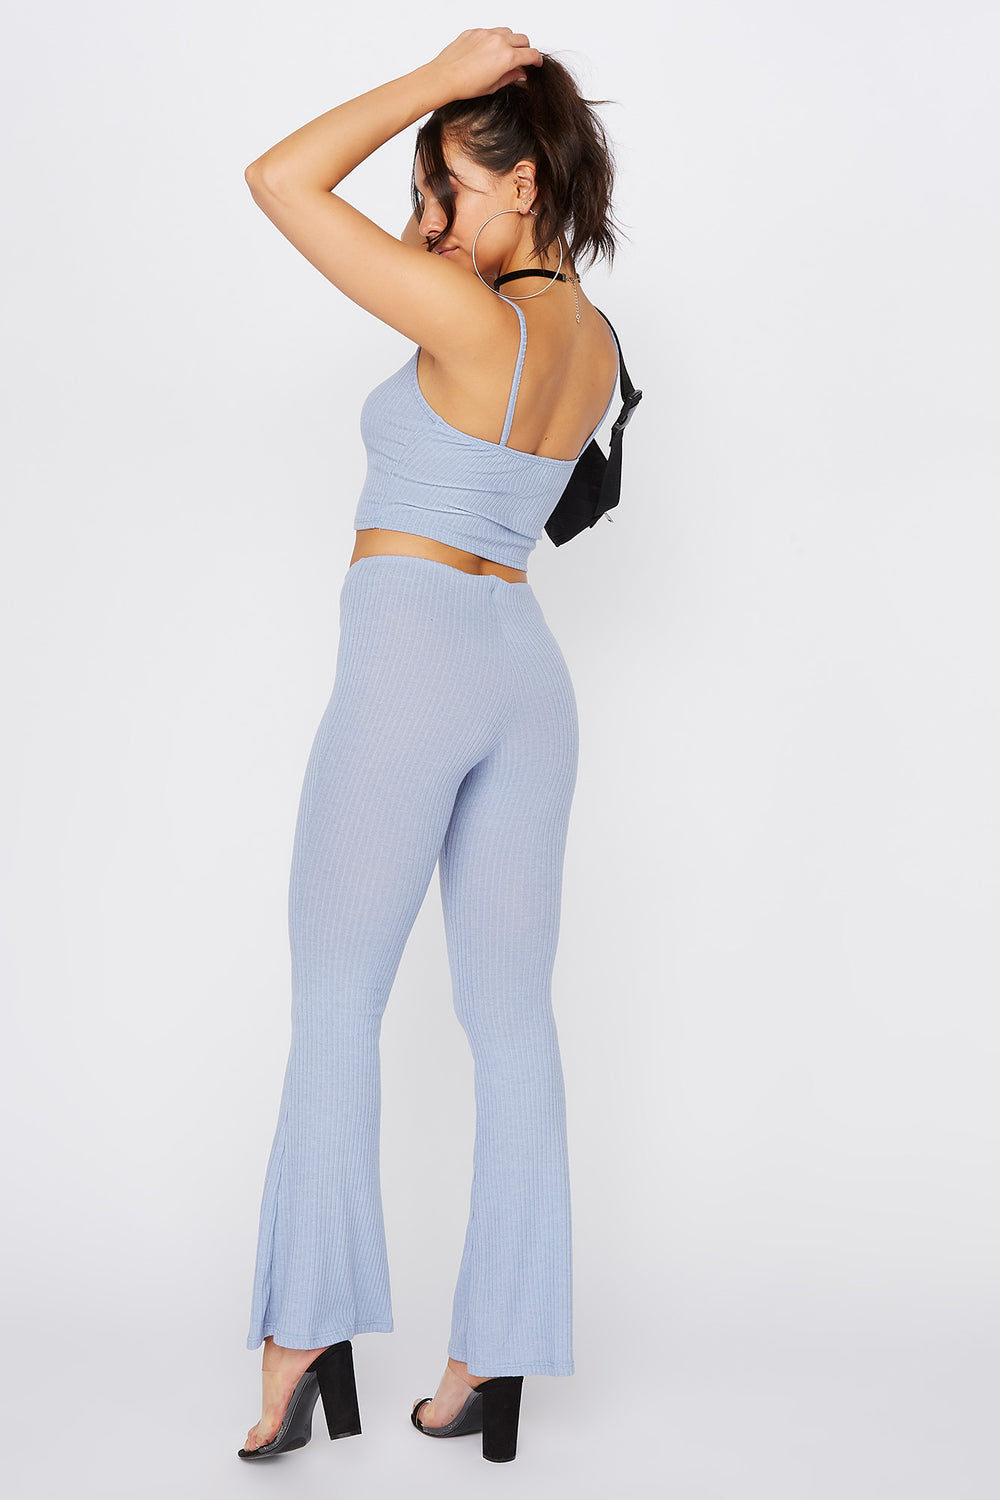 Ribbed Pull-On Flare Pant Light Blue